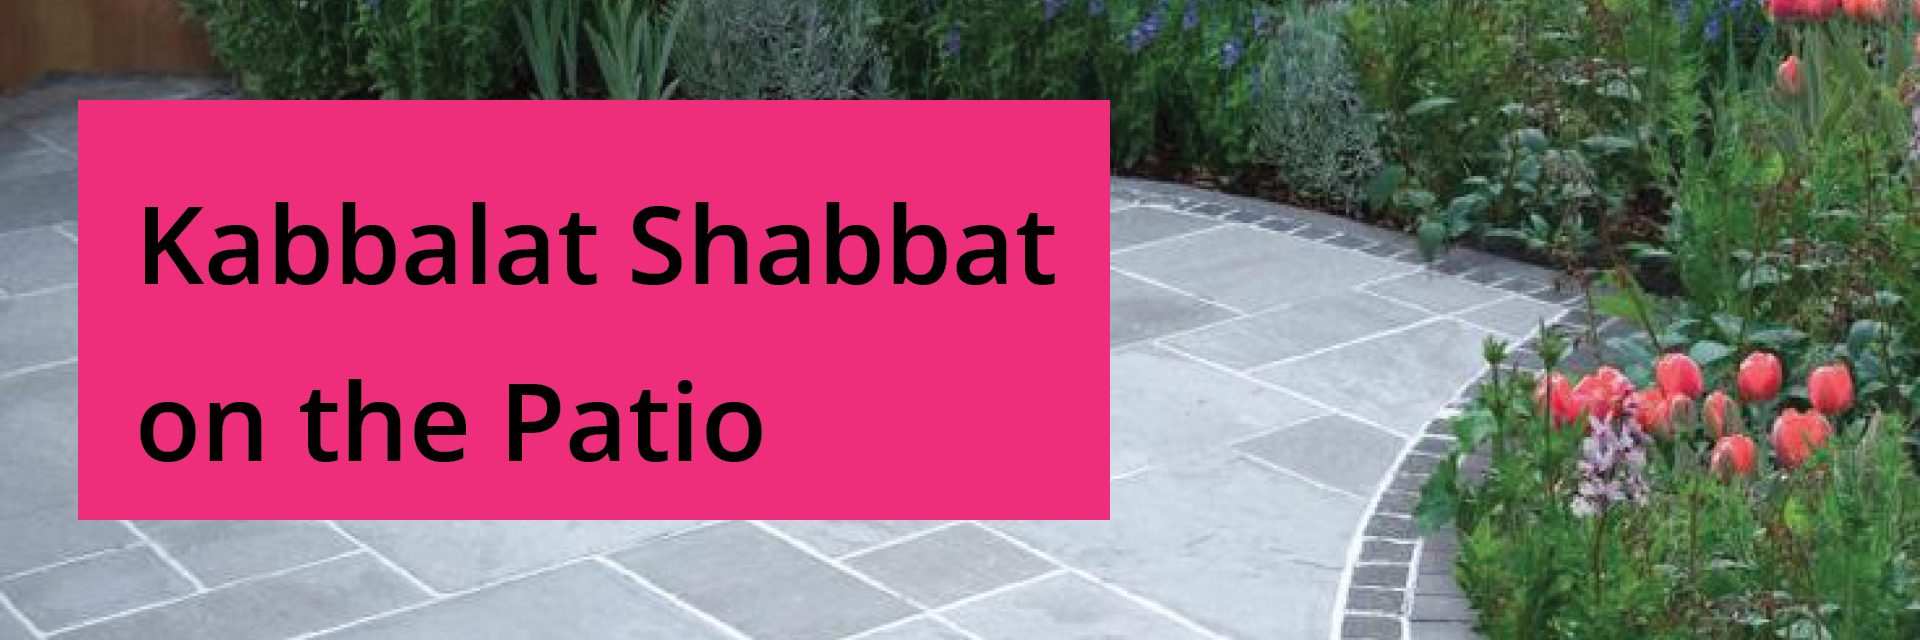 """<a href=""""https://www.congkti.org/event/shabbat-on-the-patio.html""""                                     target="""""""">                                                                 <span class=""""slider_title"""">                                     Everyone is Invited!                                </span>                                                                 </a>                                                                                                                                                                                       <span class=""""slider_description"""">Join us on the patio Friday evening, July 30th.</span>                                                                                     <a href=""""https://www.congkti.org/event/shabbat-on-the-patio.html"""" class=""""slider_link""""                             target="""""""">                             More info here....                            </a>"""